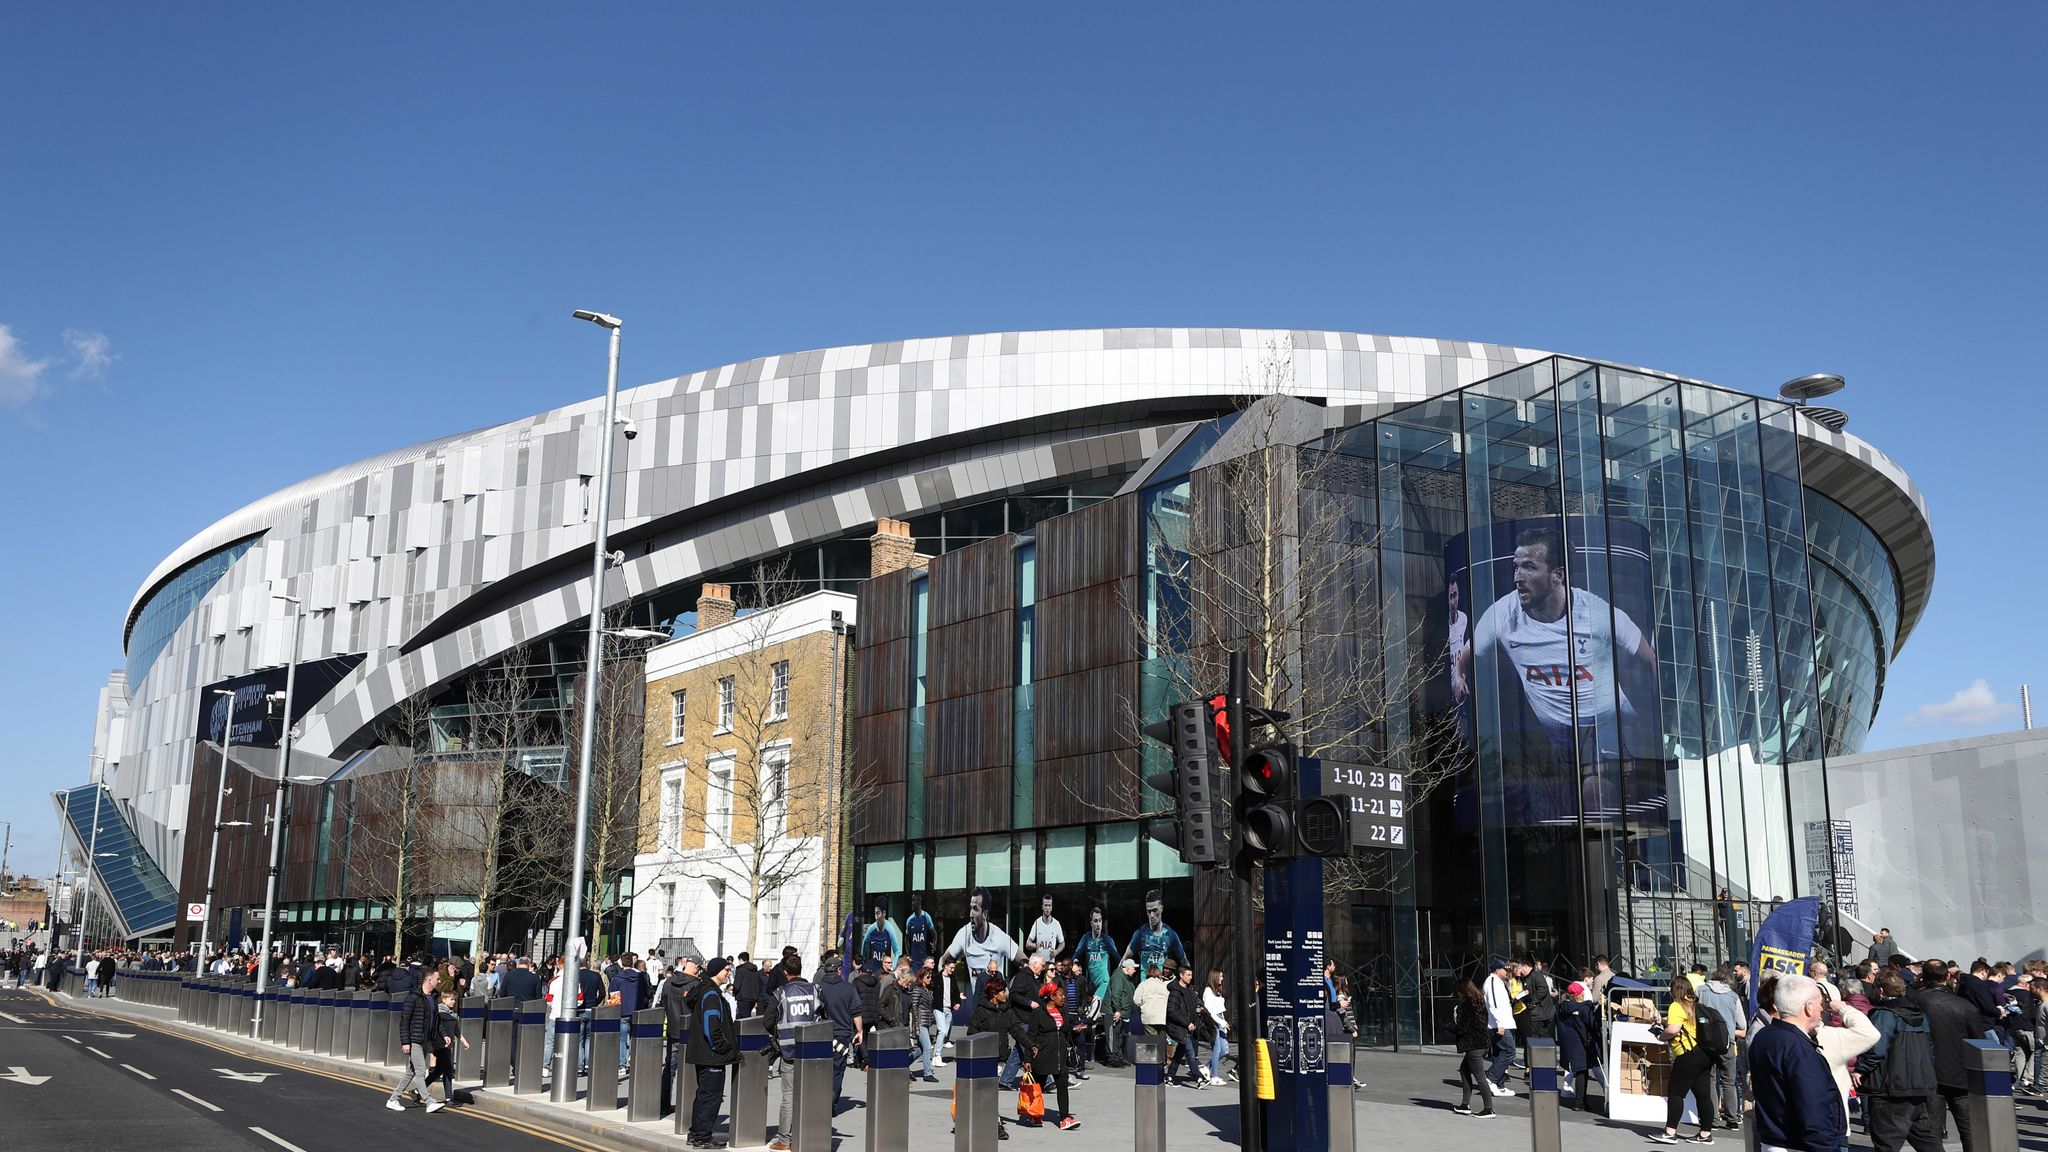 Tottenham S New Stadium All You Need To Know About Spurs New 1billion Ground Football News Sky Sports